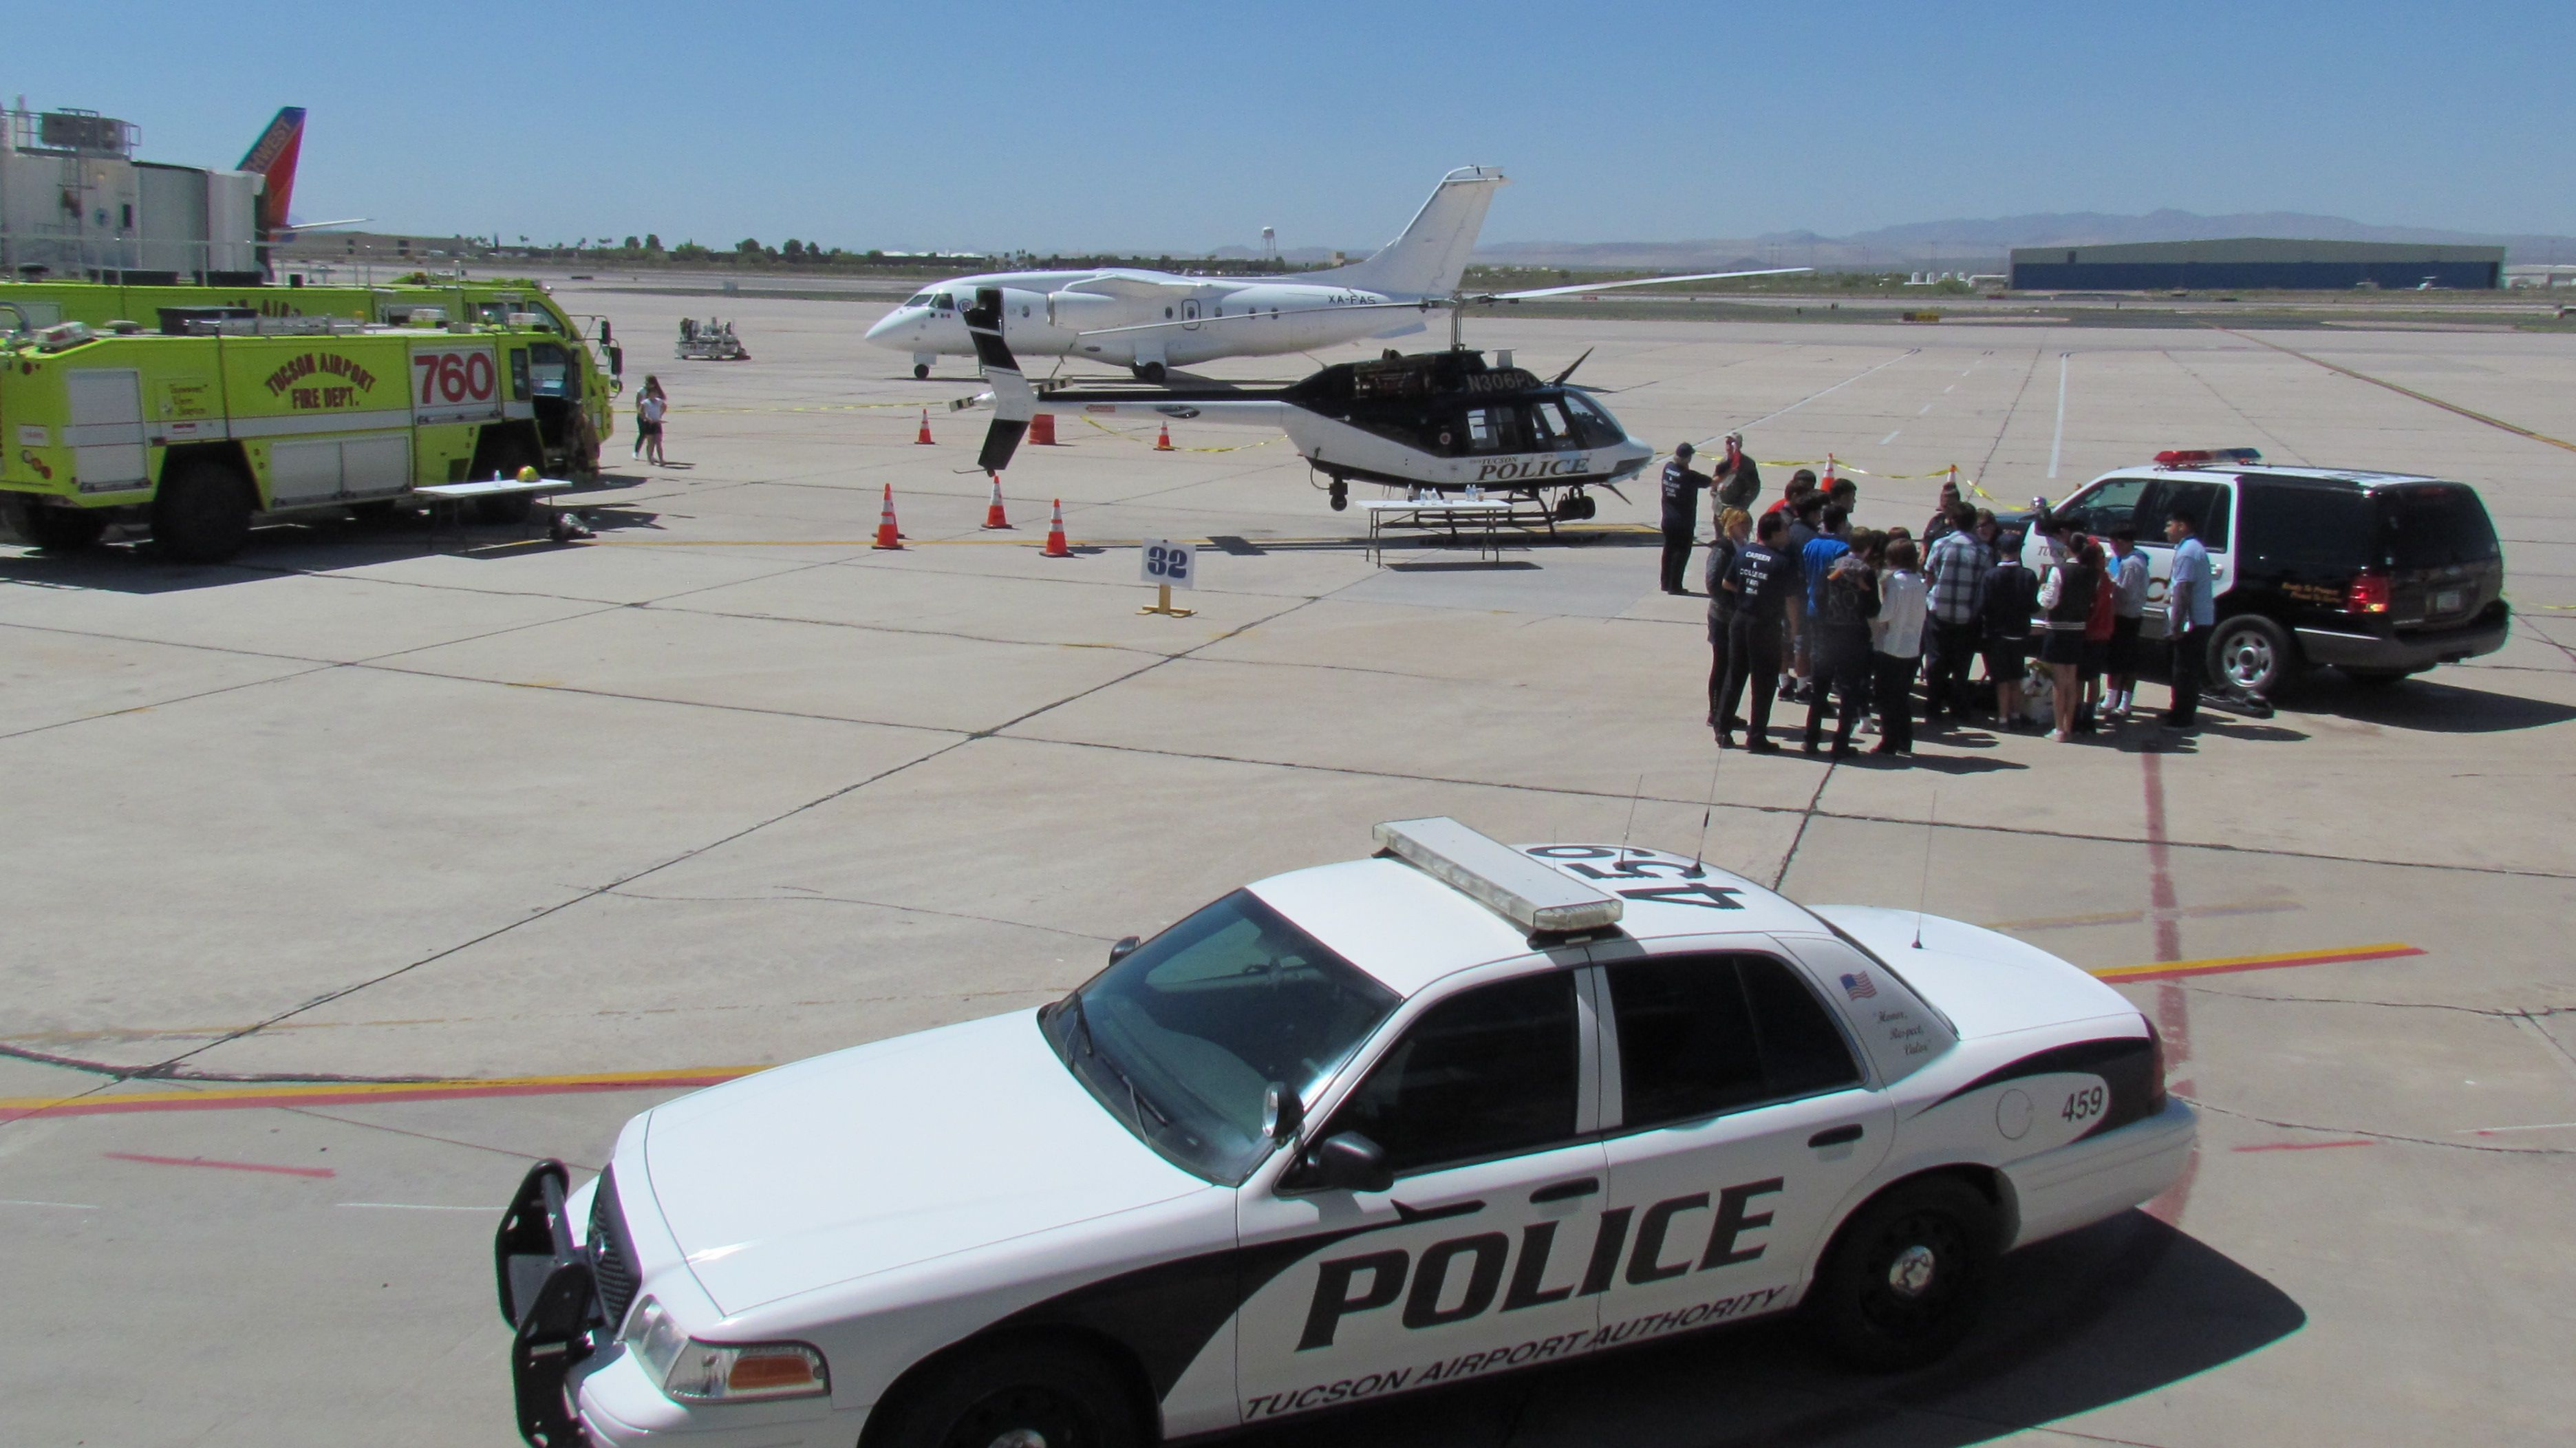 Career expo at tucson airport april 2014 police department